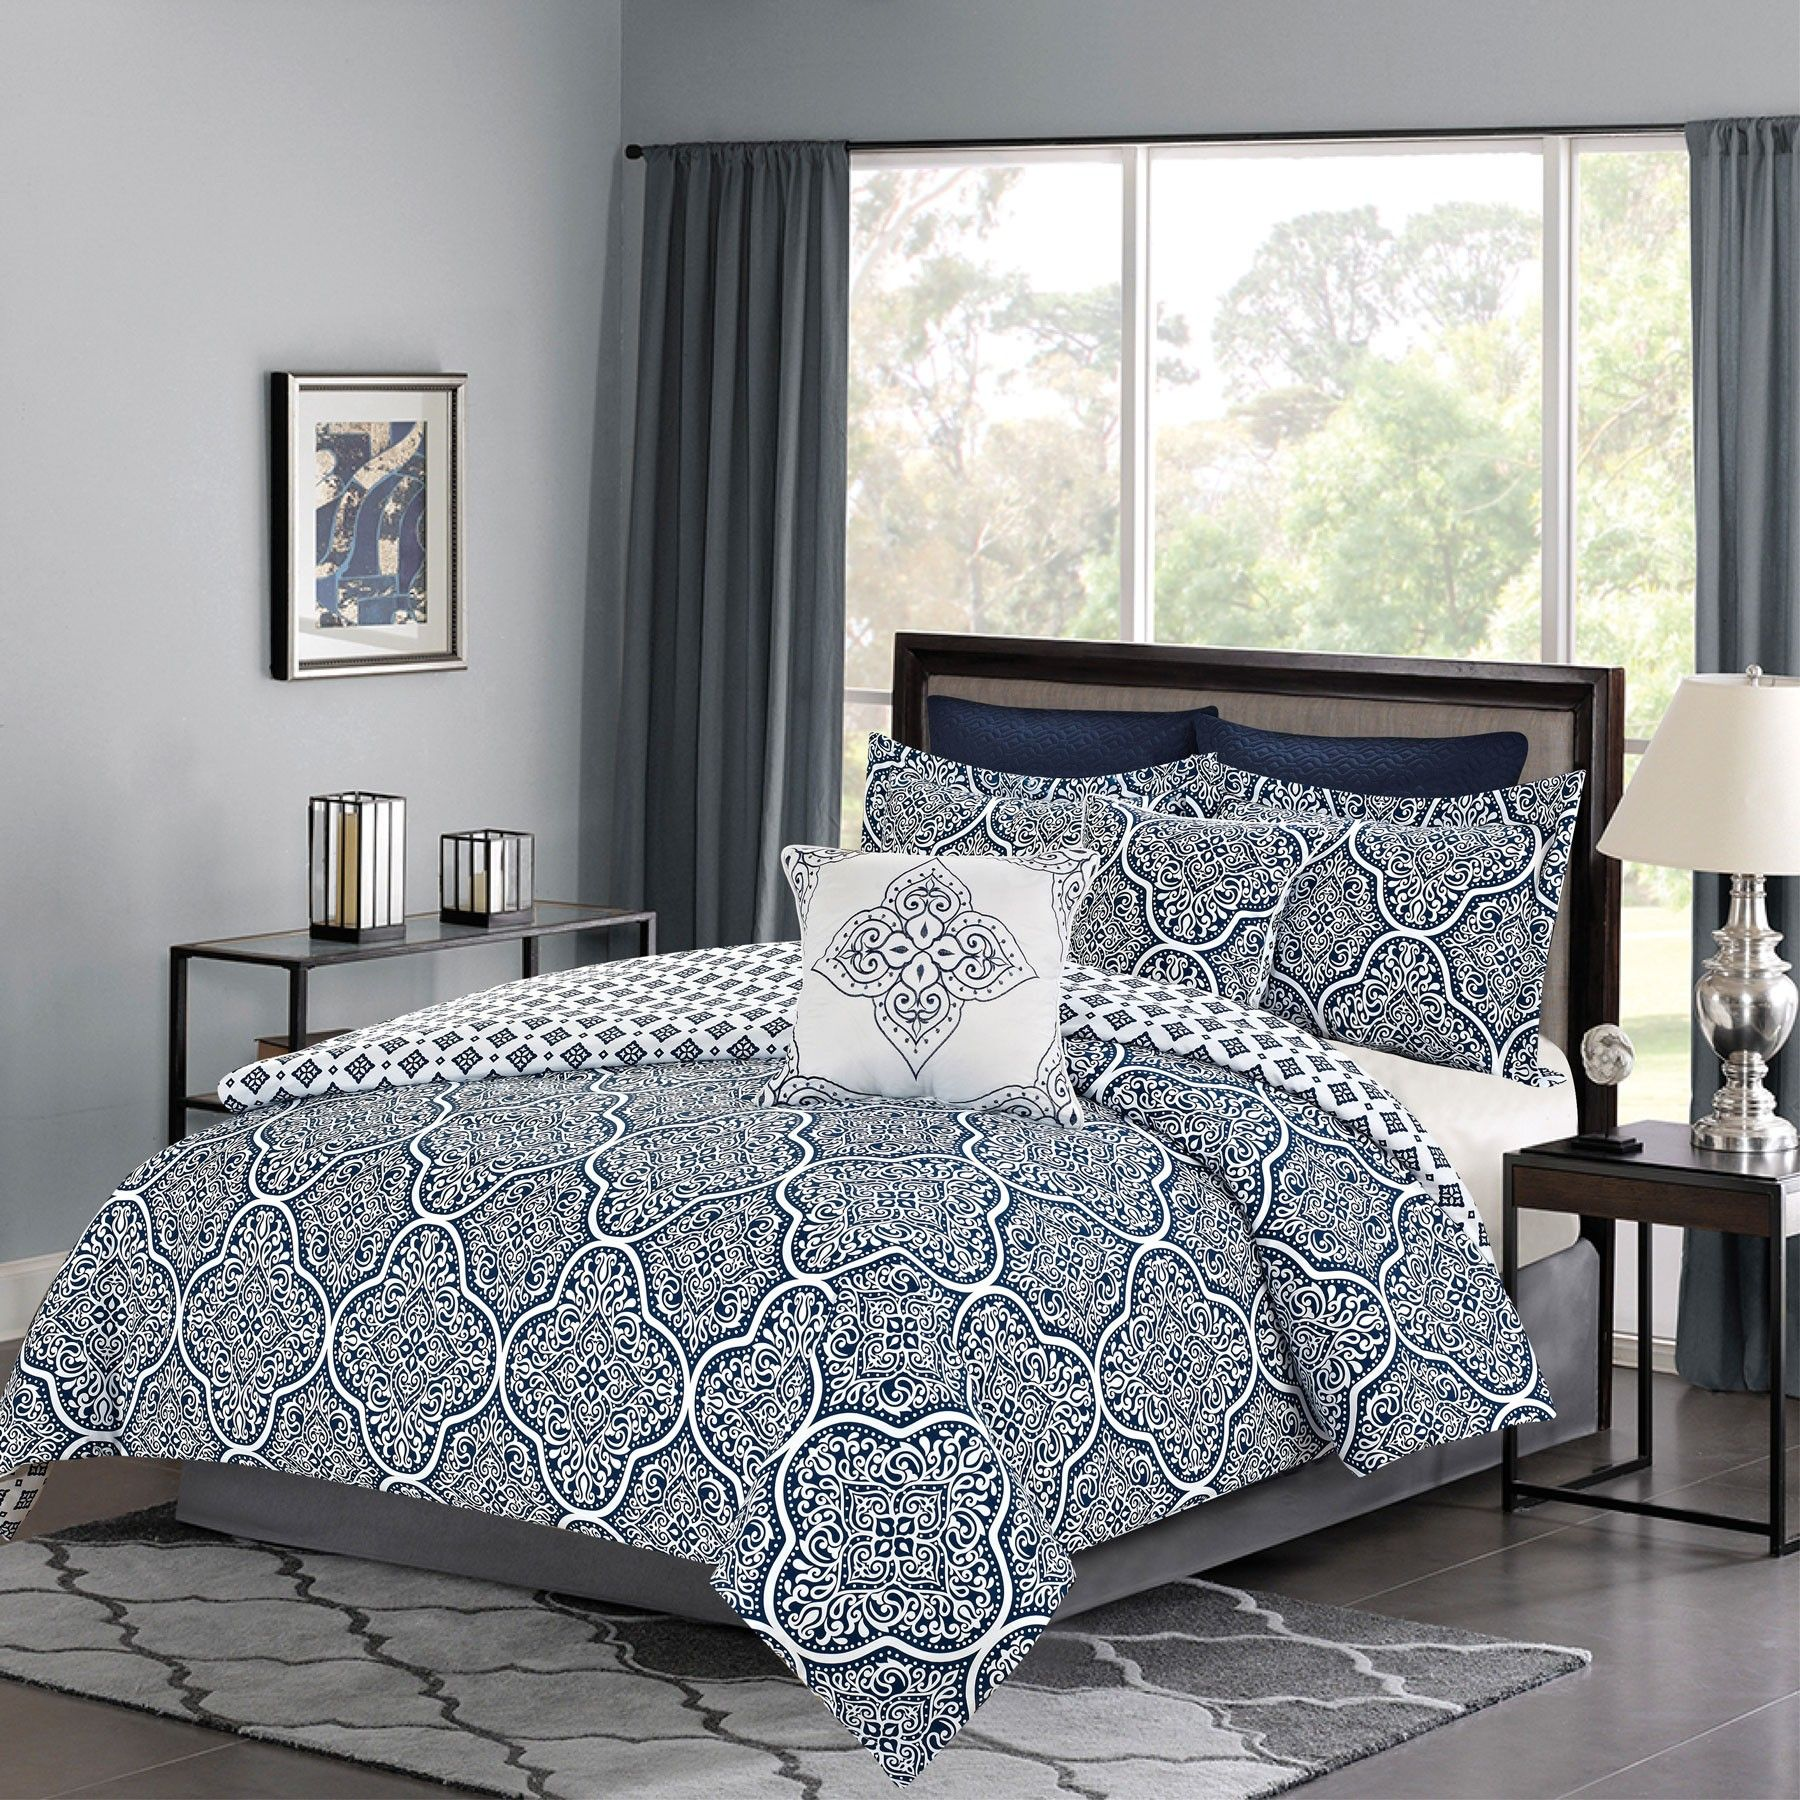 patchwork bed quilted quilt com oversized reversible set floral white sale and blue on king bedding striped amazon size sets comforters black katelin comforter bedspread